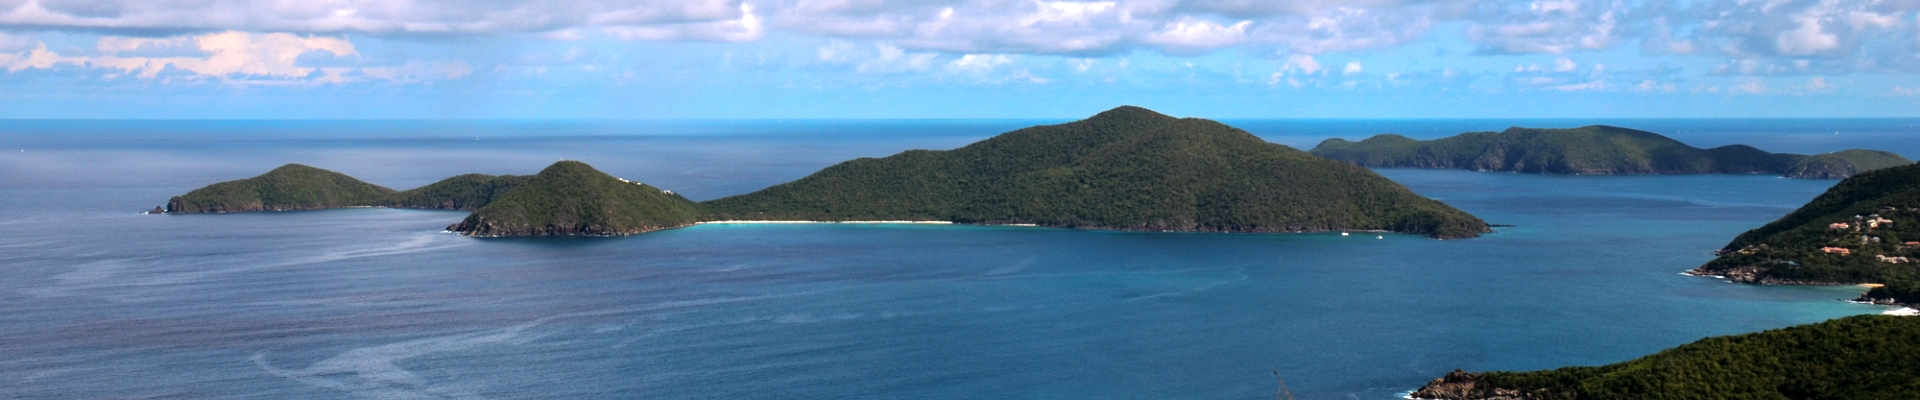 3.1_Header_Locations_BritishVirginIslands_1920x400